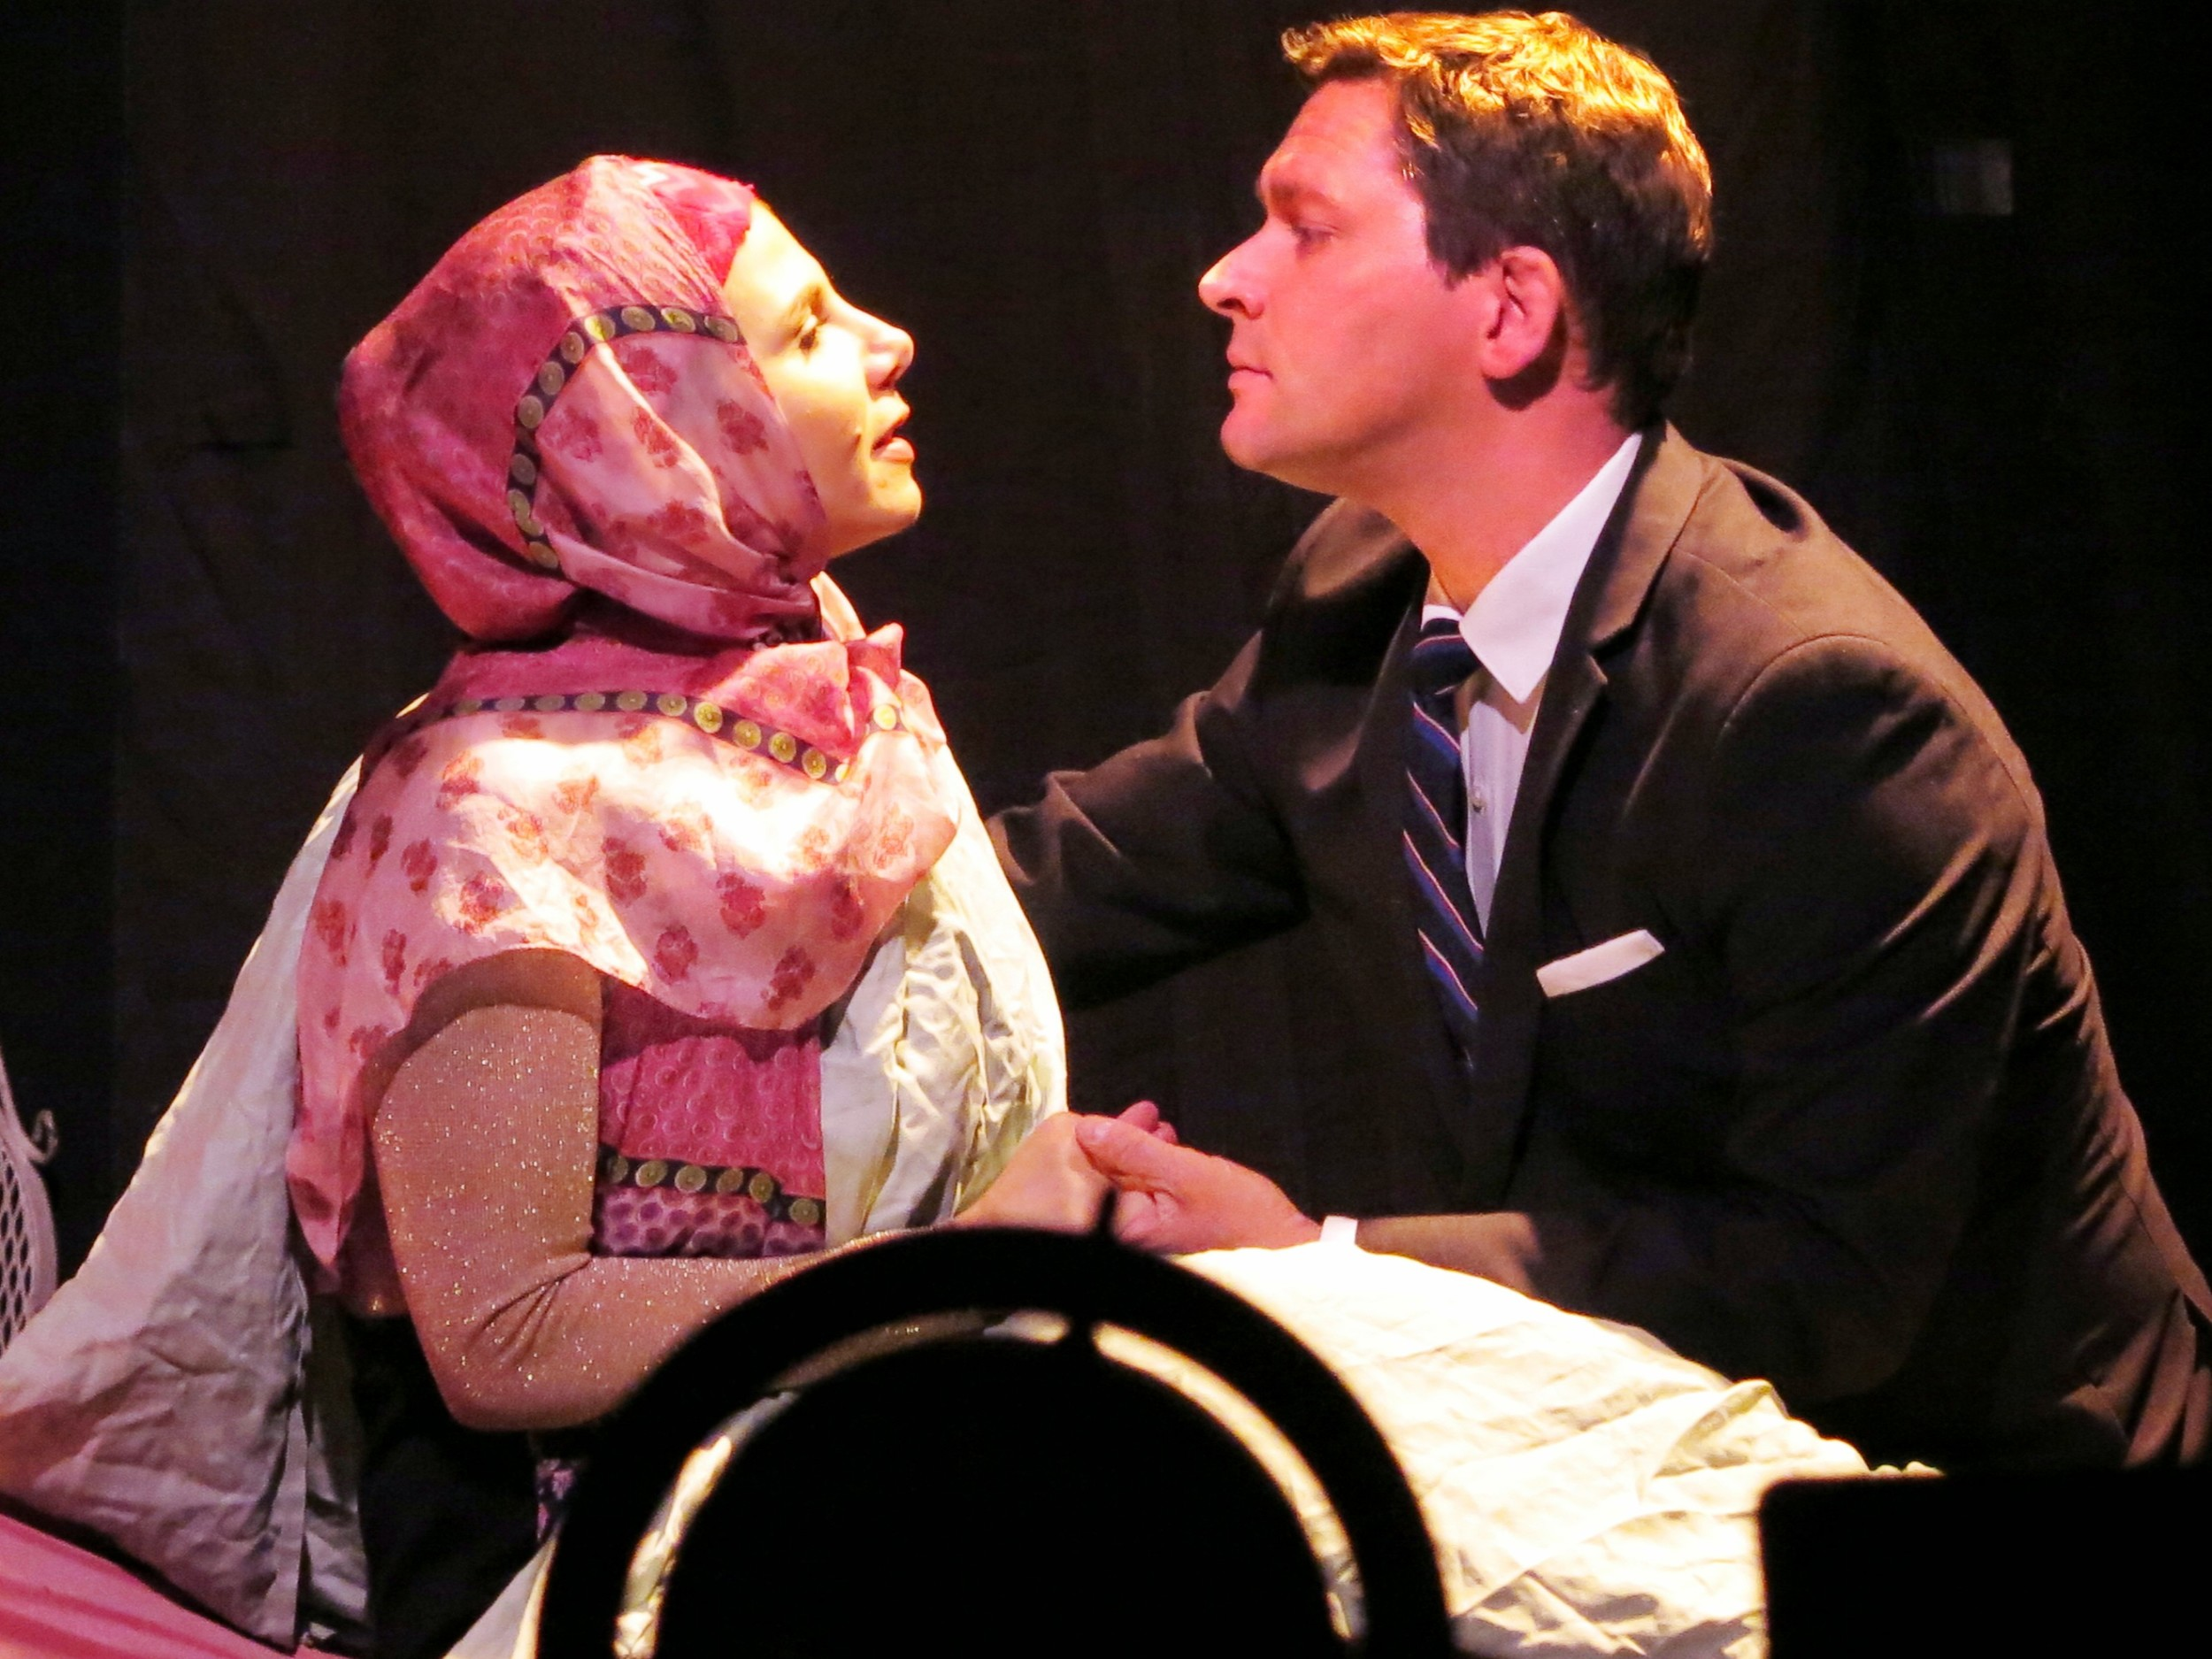 Marlain Angelides and Brian Childers in MY WIFE IN A CHADOR directed by Stephan Morrow at Theater For The New City, Nov 2014